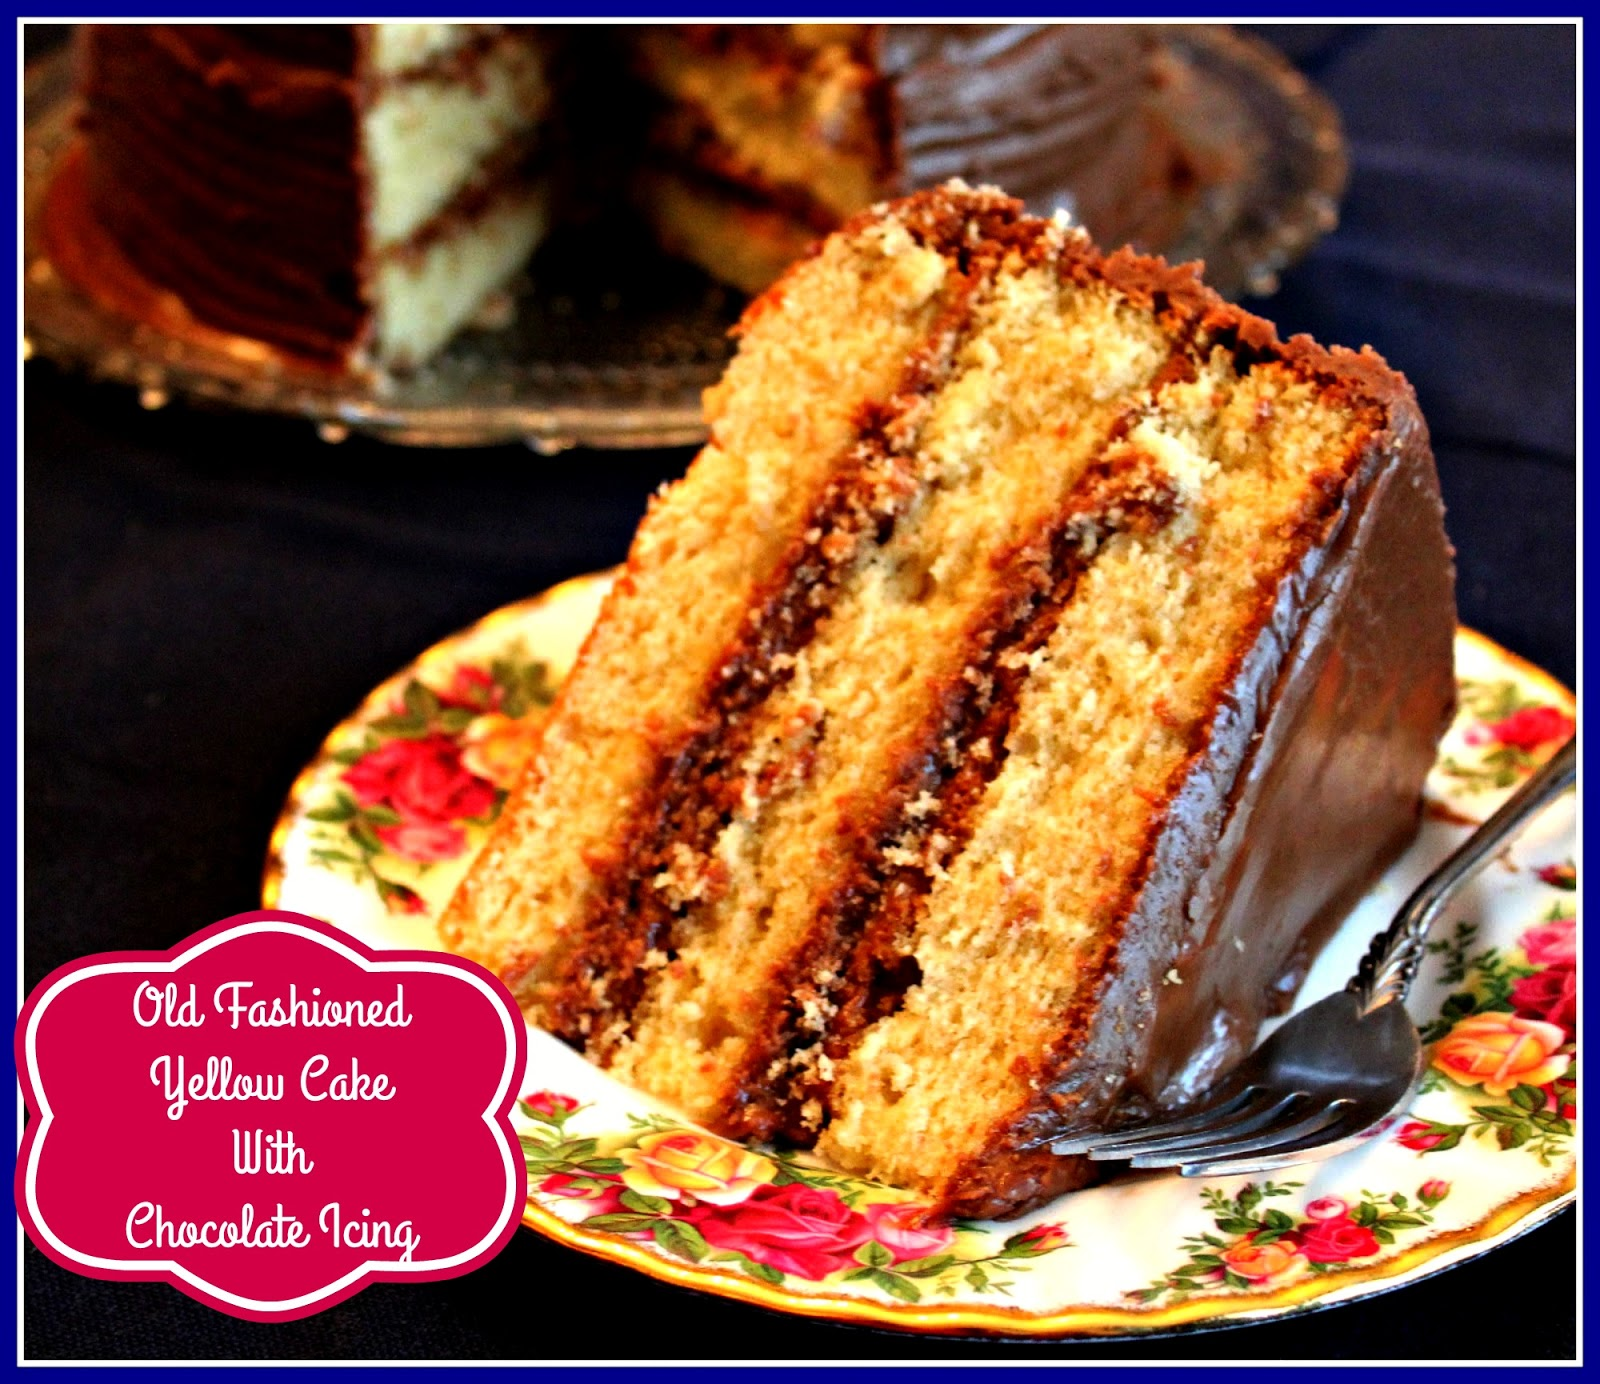 Sweet Tea And Cornbread Old Fashioned Yellow Cake With Chocolate Icing